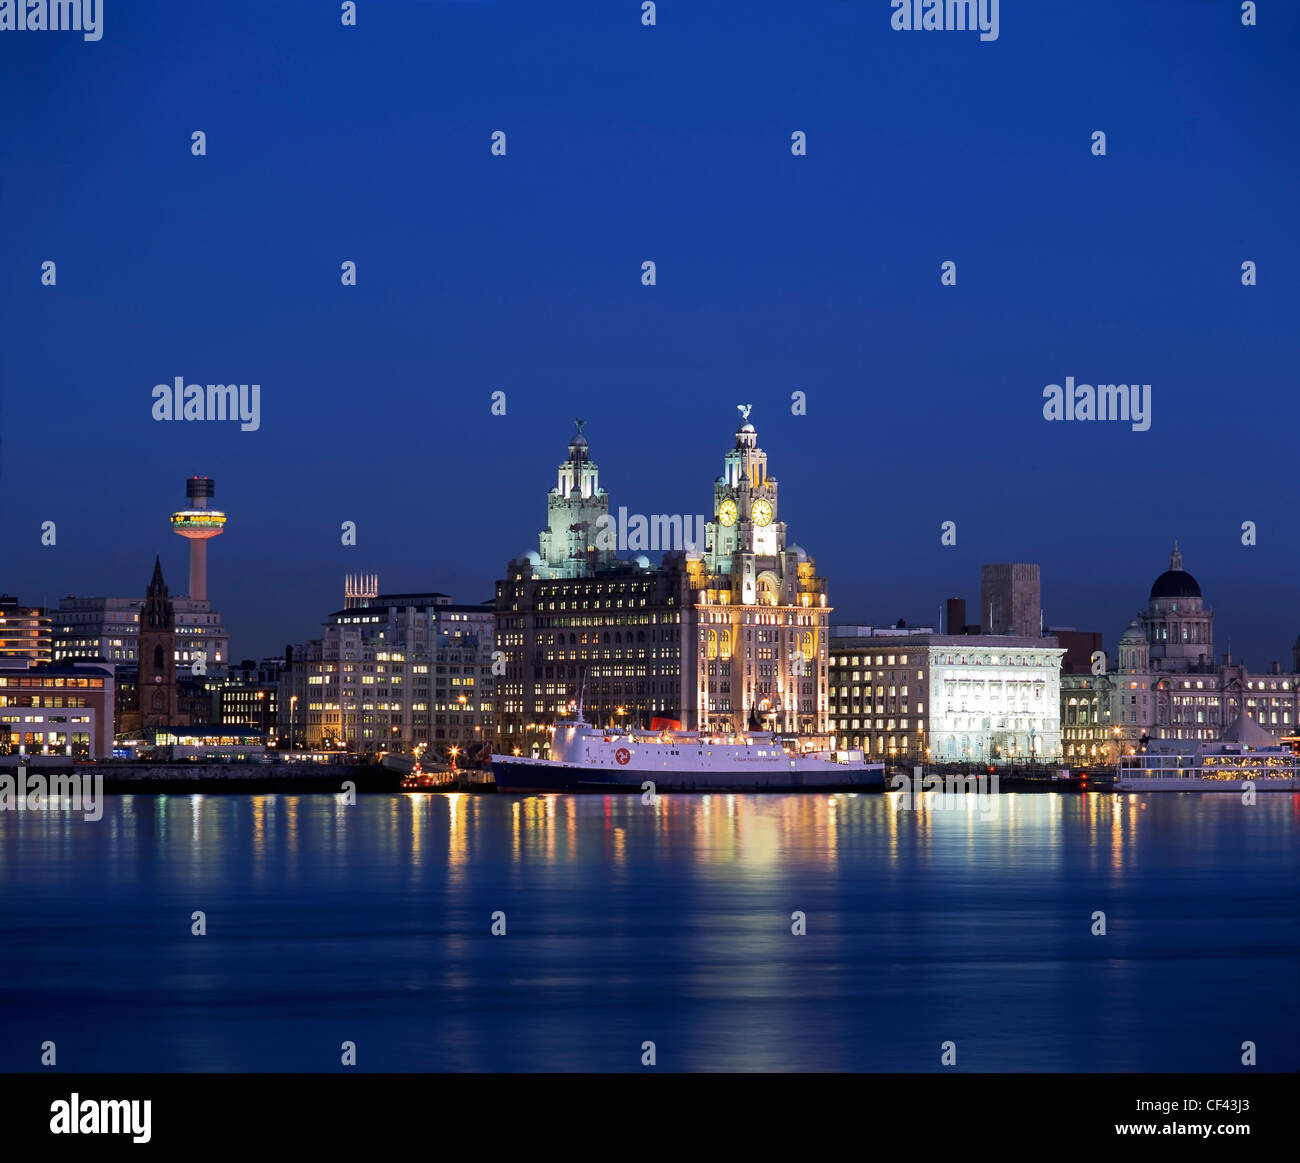 View across the River Mersey of the famous Liverpool waterfront at night. - Stock Image